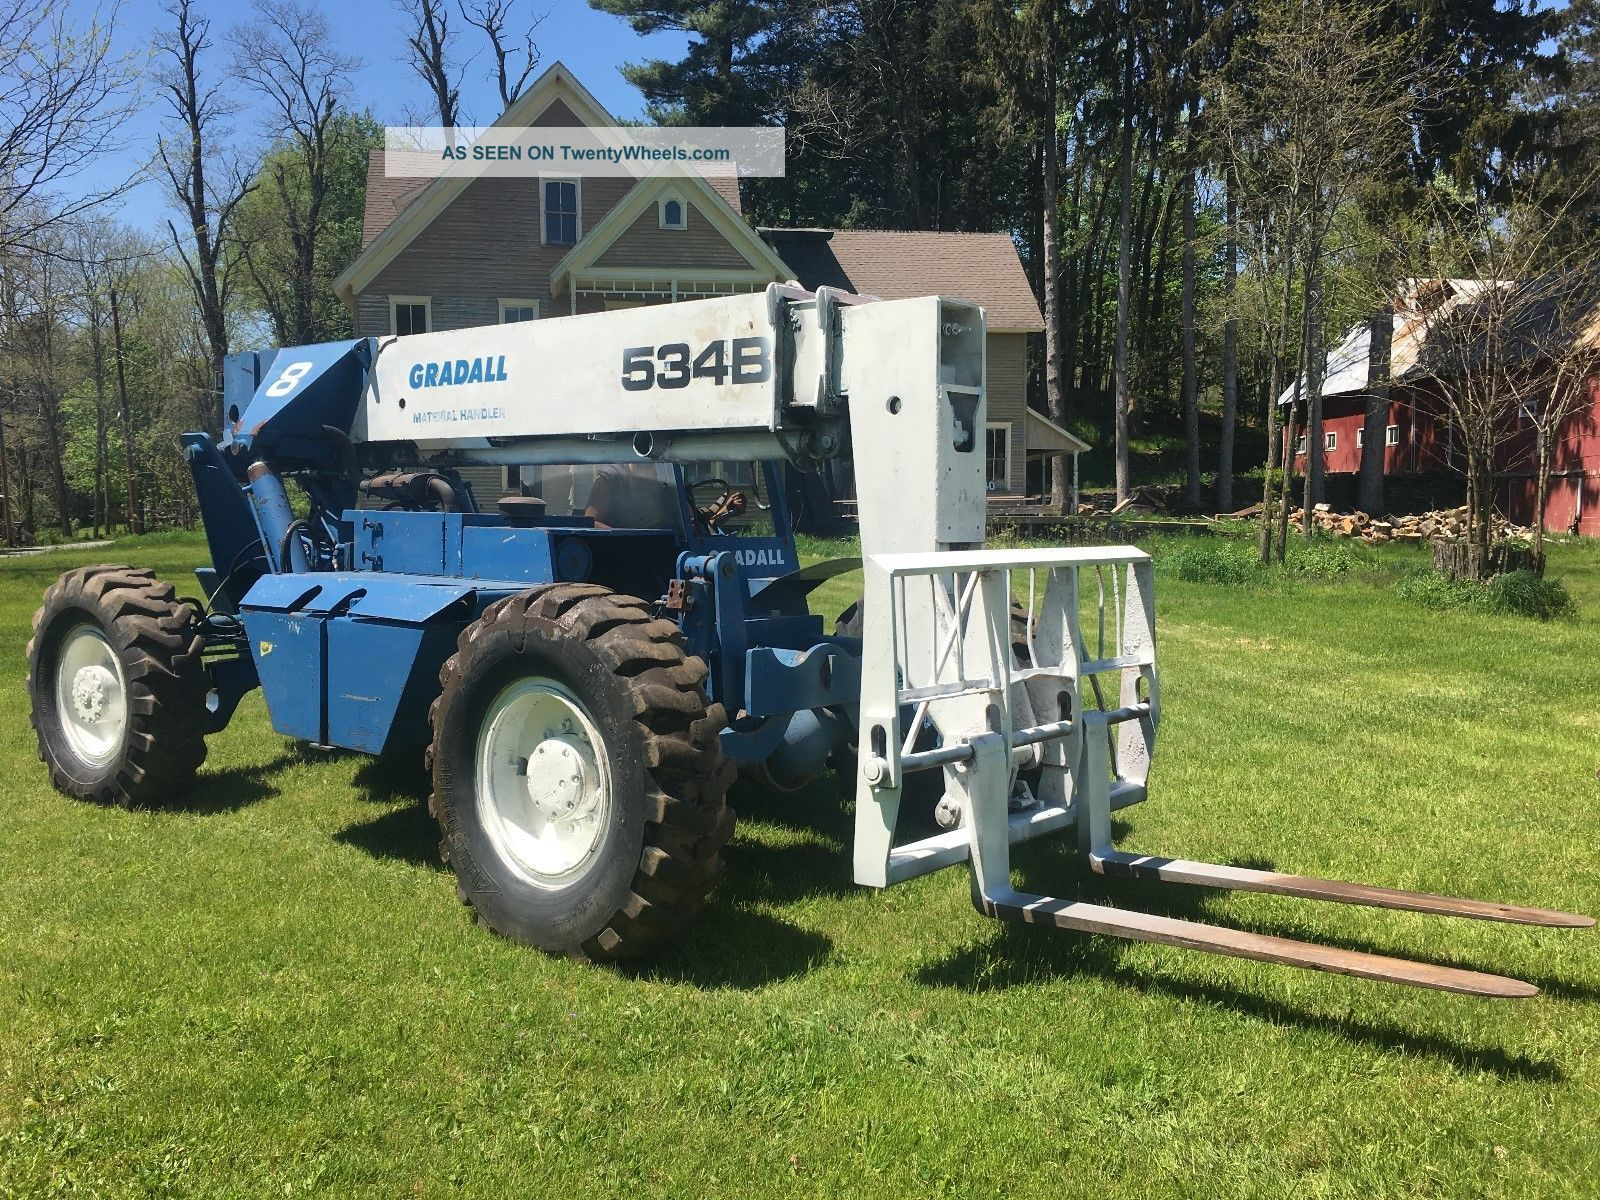 Gradall 534b 4x4 Telescoping Rough Terrain Forklift Forklifts photo